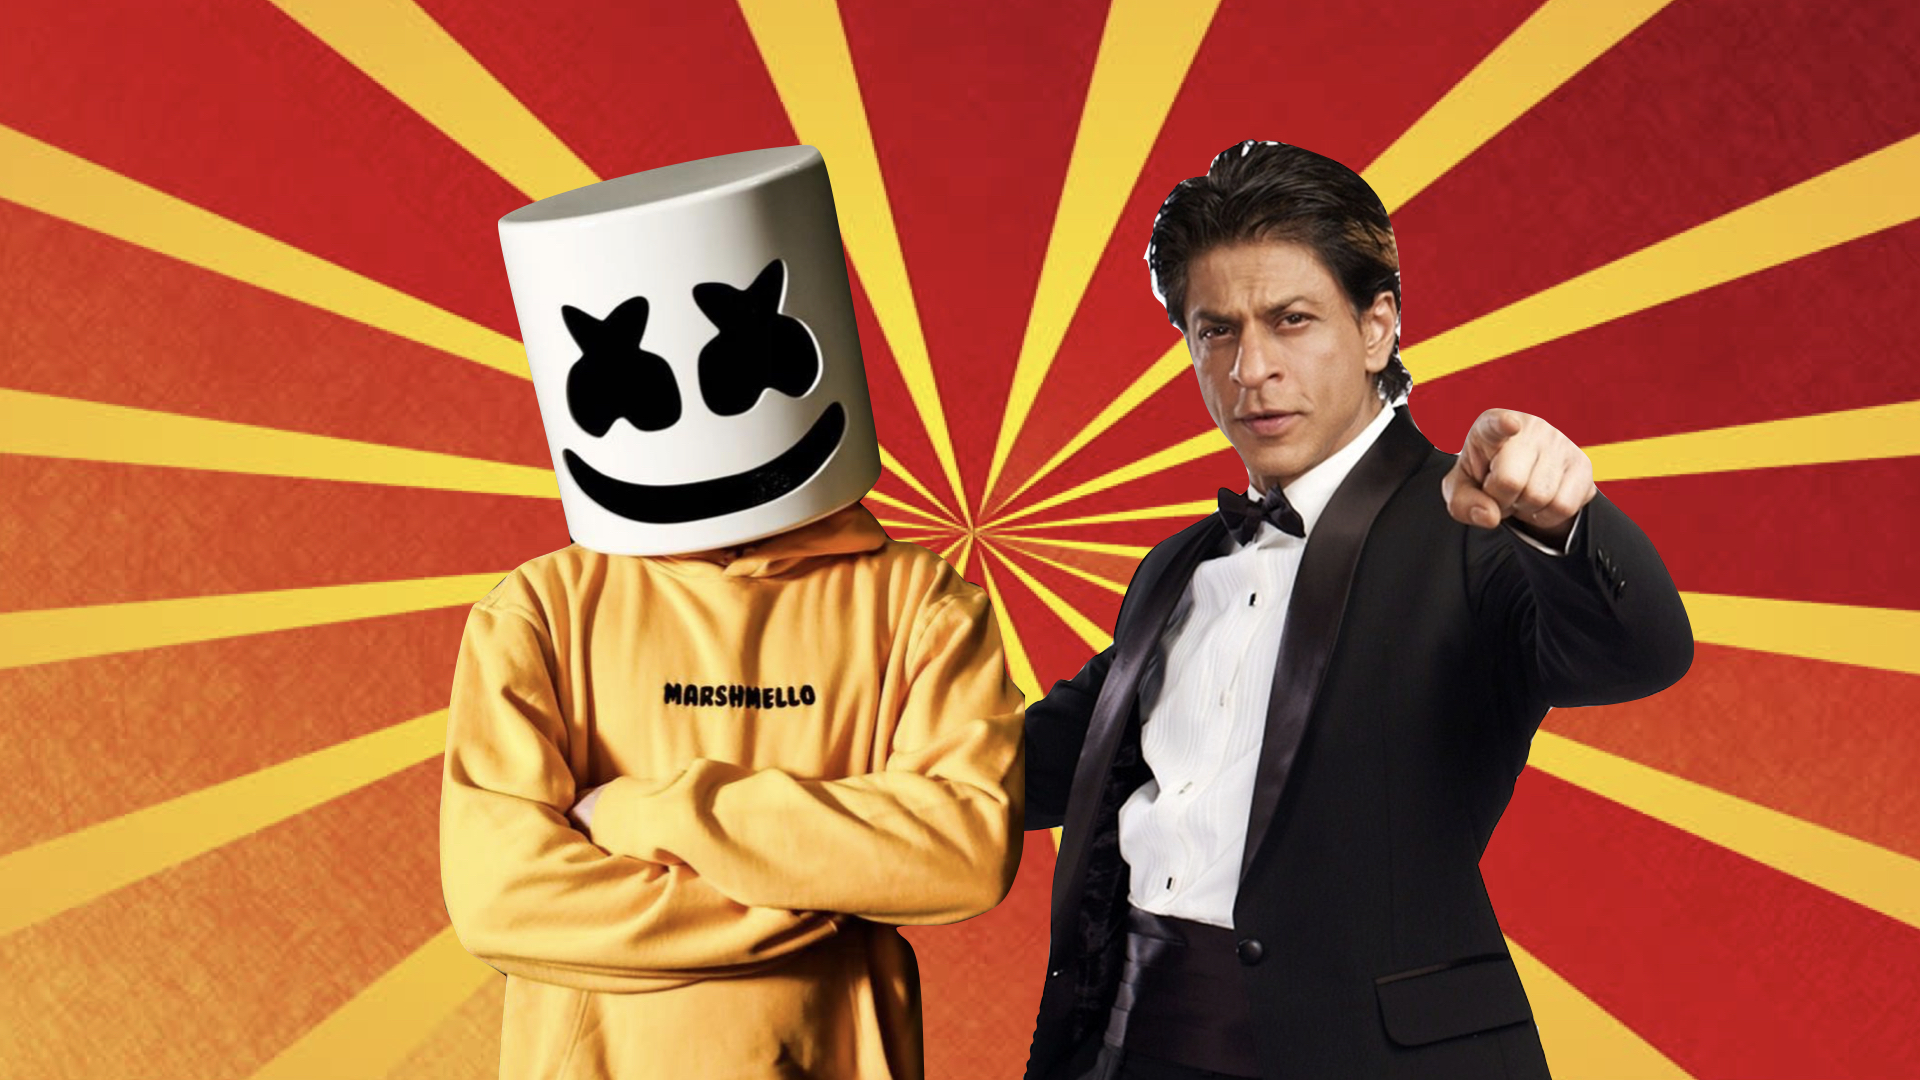 King Khan Collaborates With Marshmello For New Music Video - DissDash